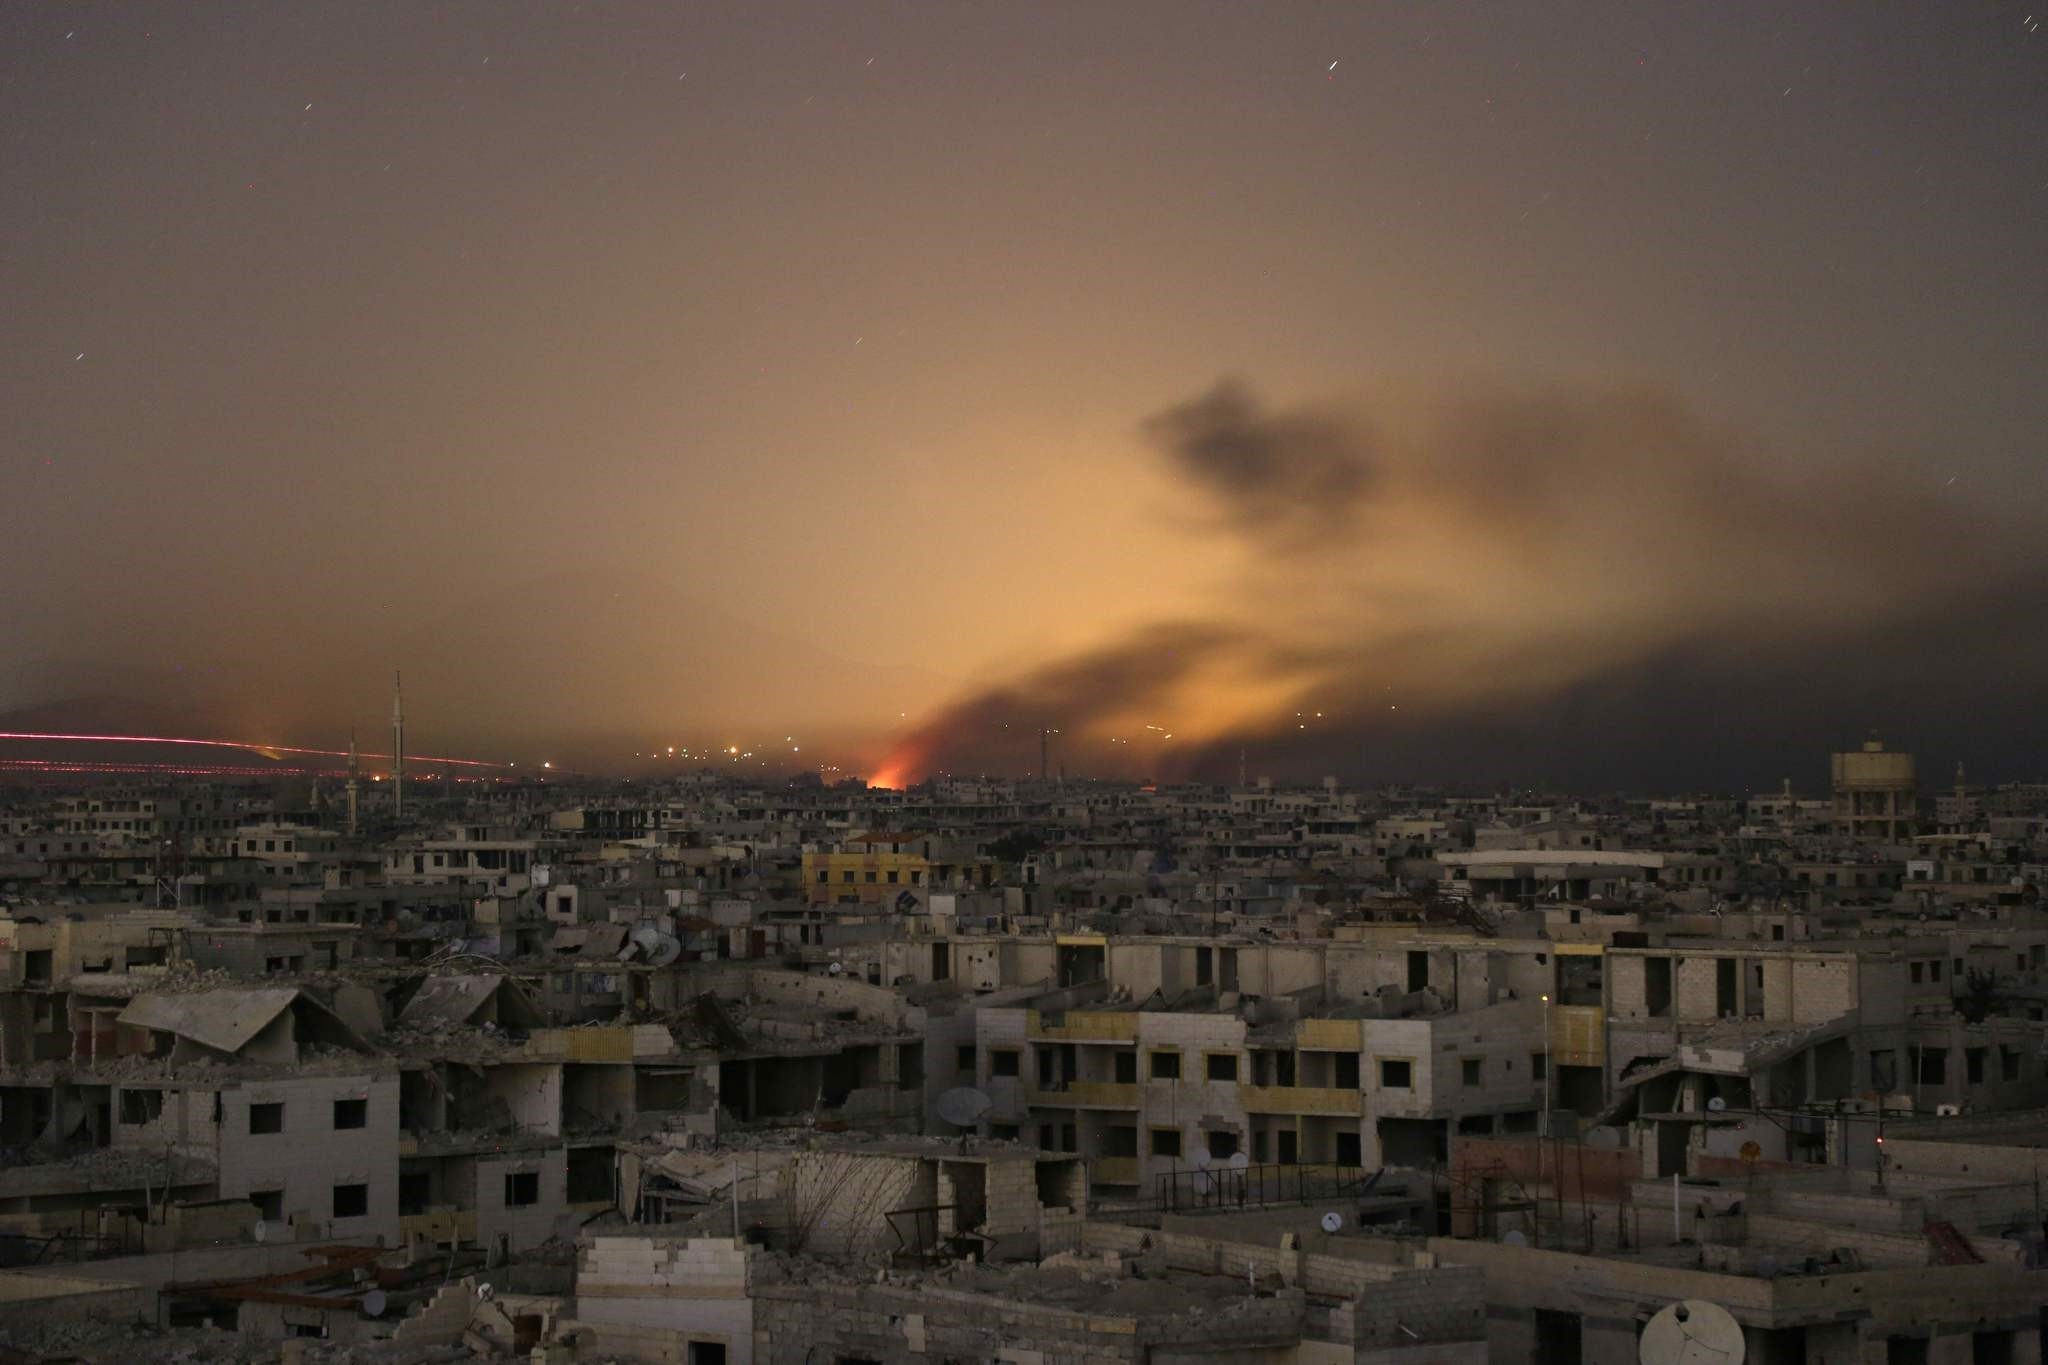 Lights and smoke are seen during regime bombardment on the rebel-controlled town of Arbin, in the besieged Eastern Ghouta region on the outskirts of the capital Damascus, on late March 11, 2018. (AFP Photo)